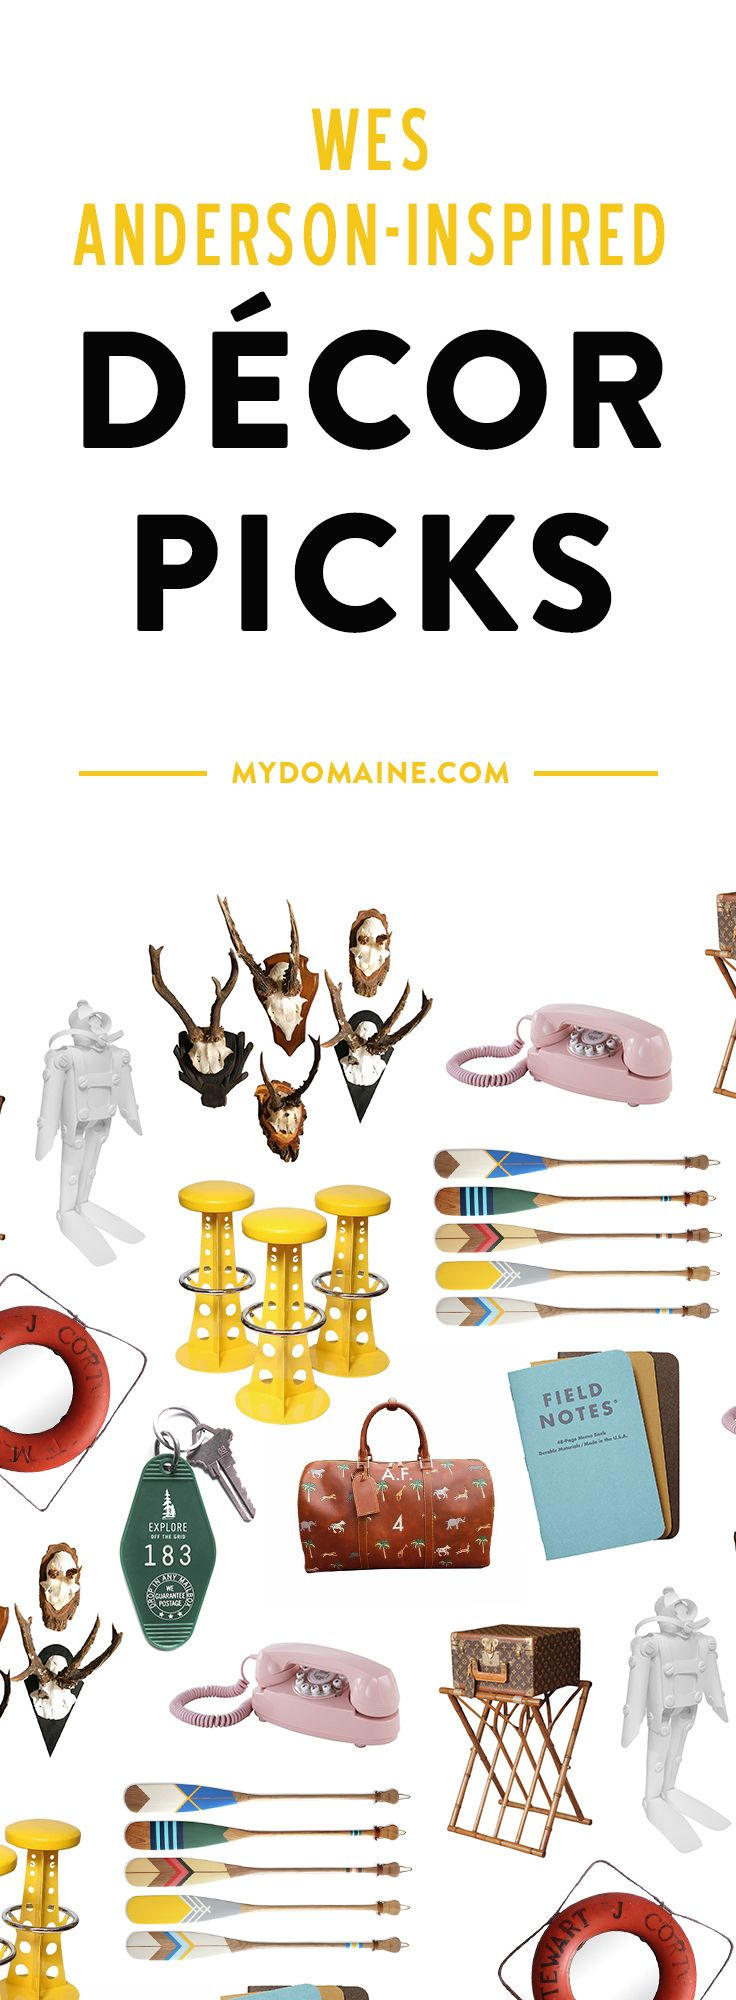 Must-have Wes Anderson inspired décor